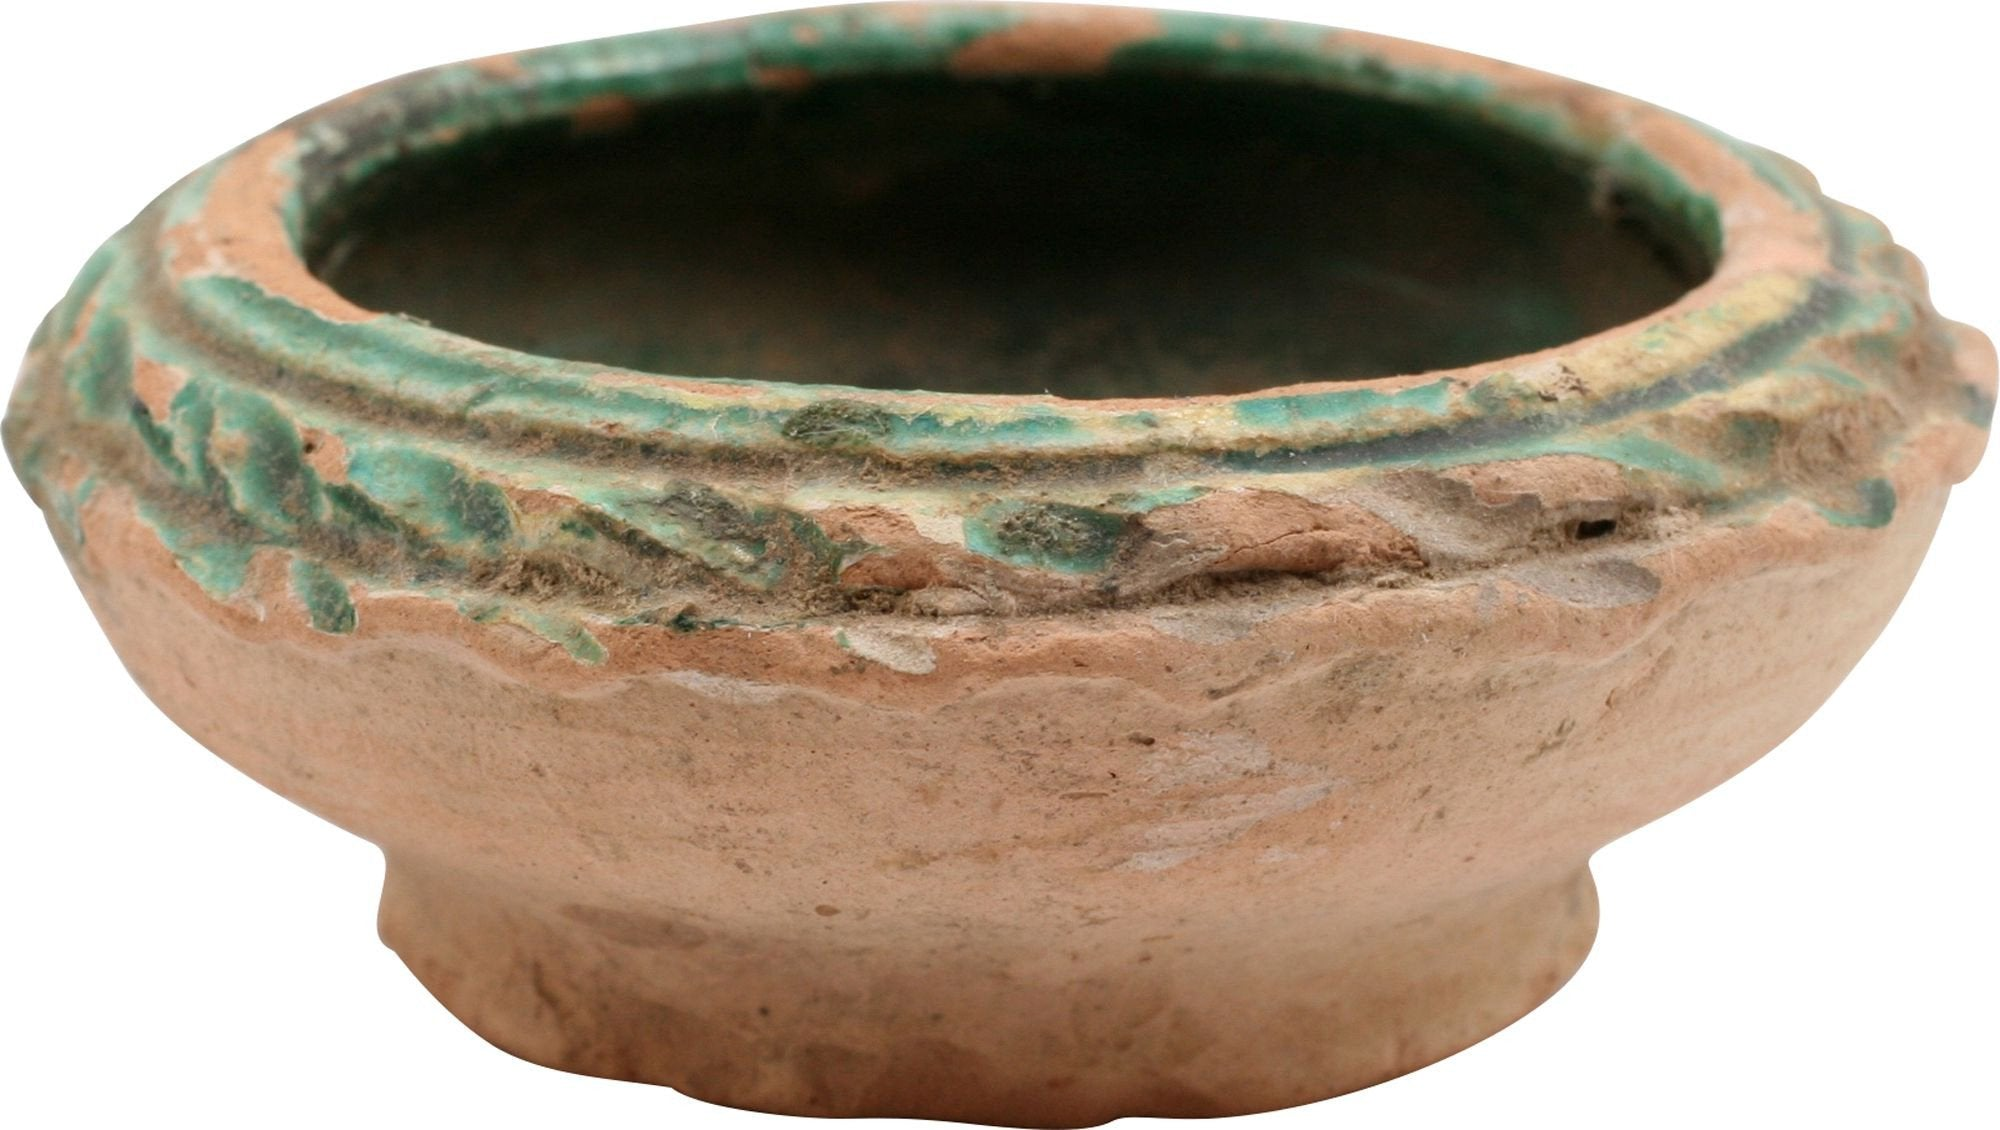 Egyptian Green Glazed Terracotta Cosmetic Bowl - Product